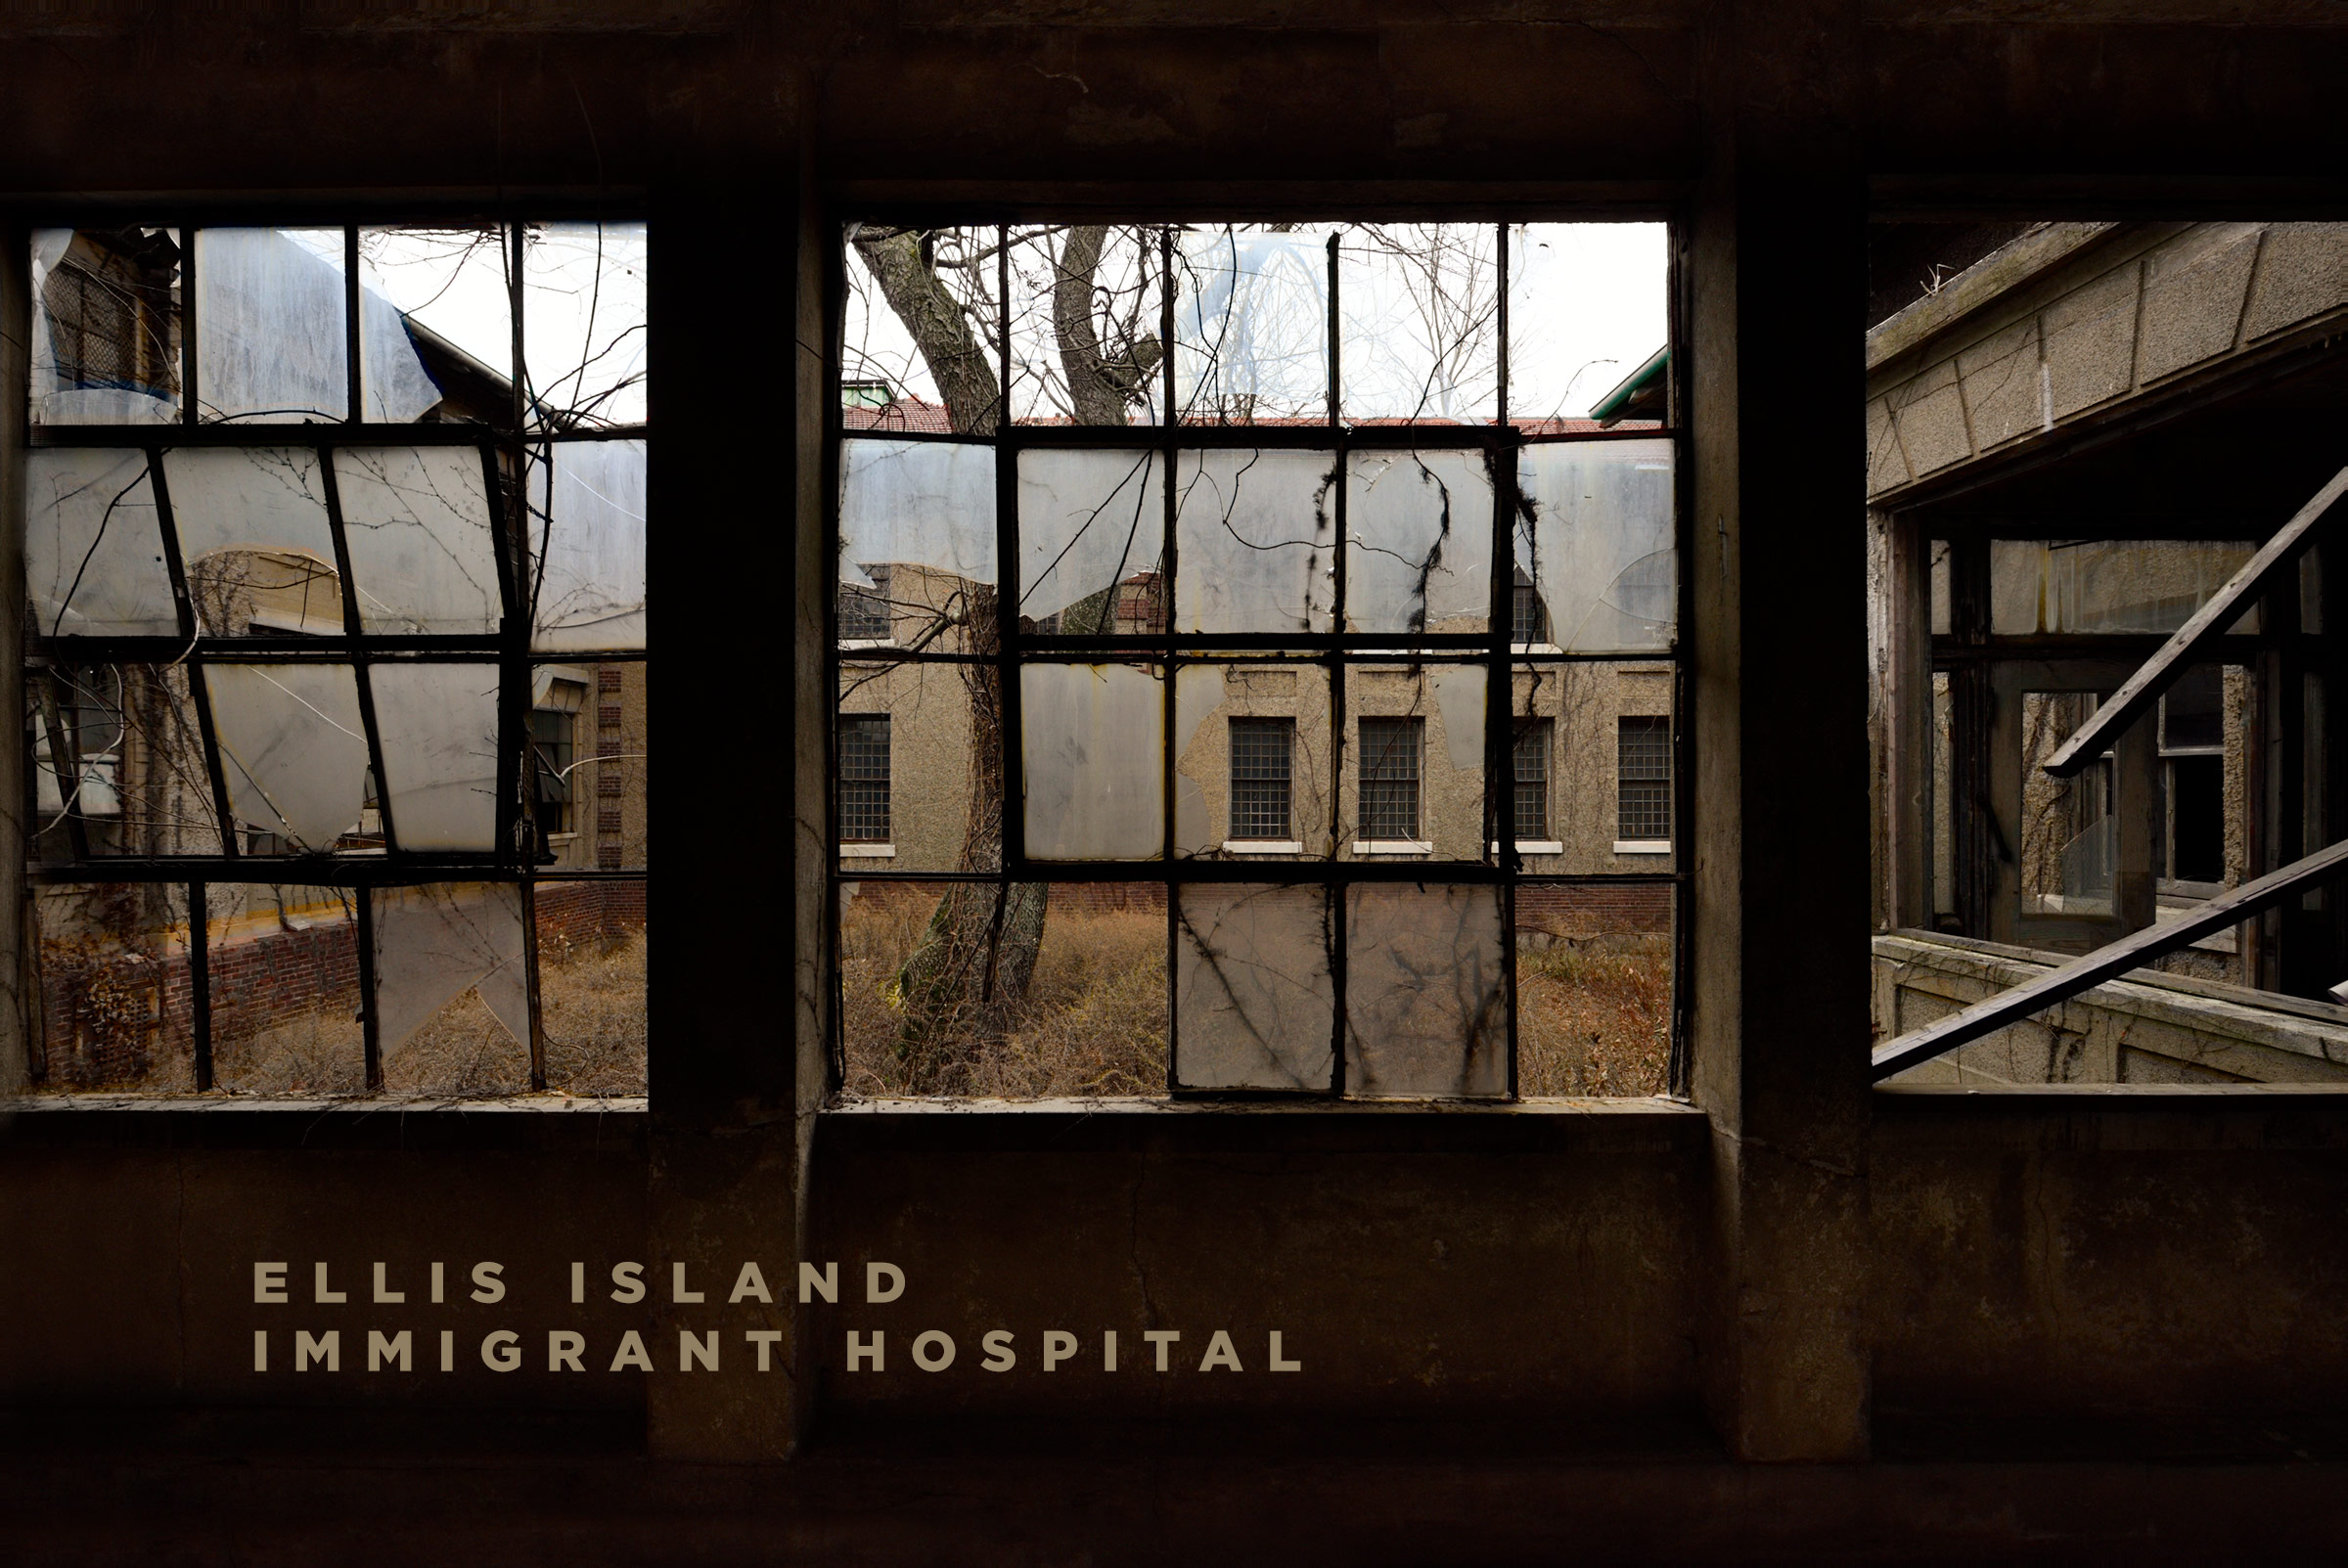 Ellis Island Immigrant Hospital